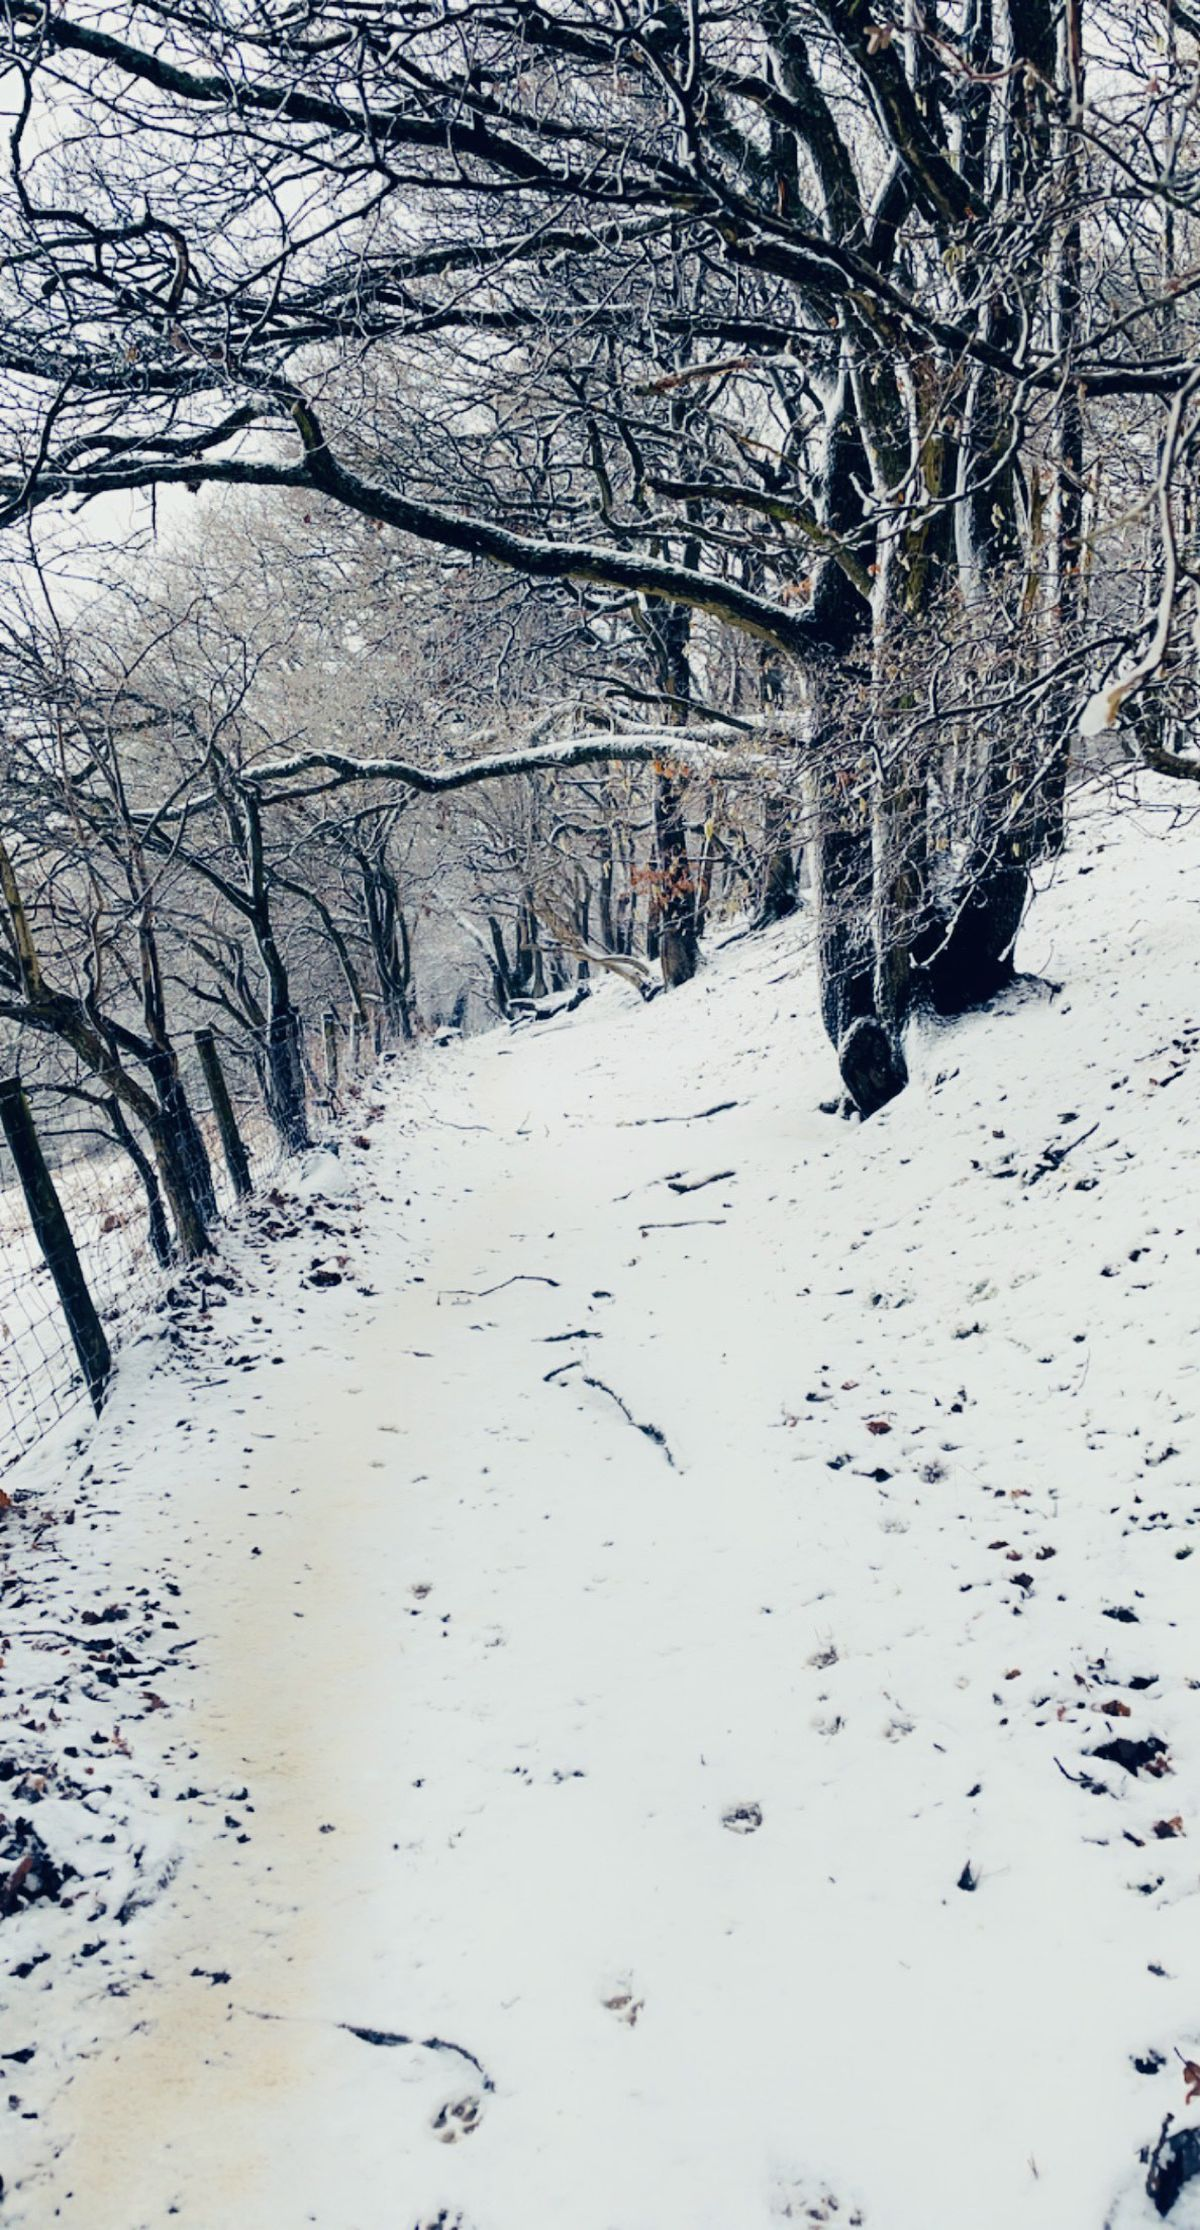 Snowy scenes from the Long Mynd in Church Stretton. Pic: Julie Powell